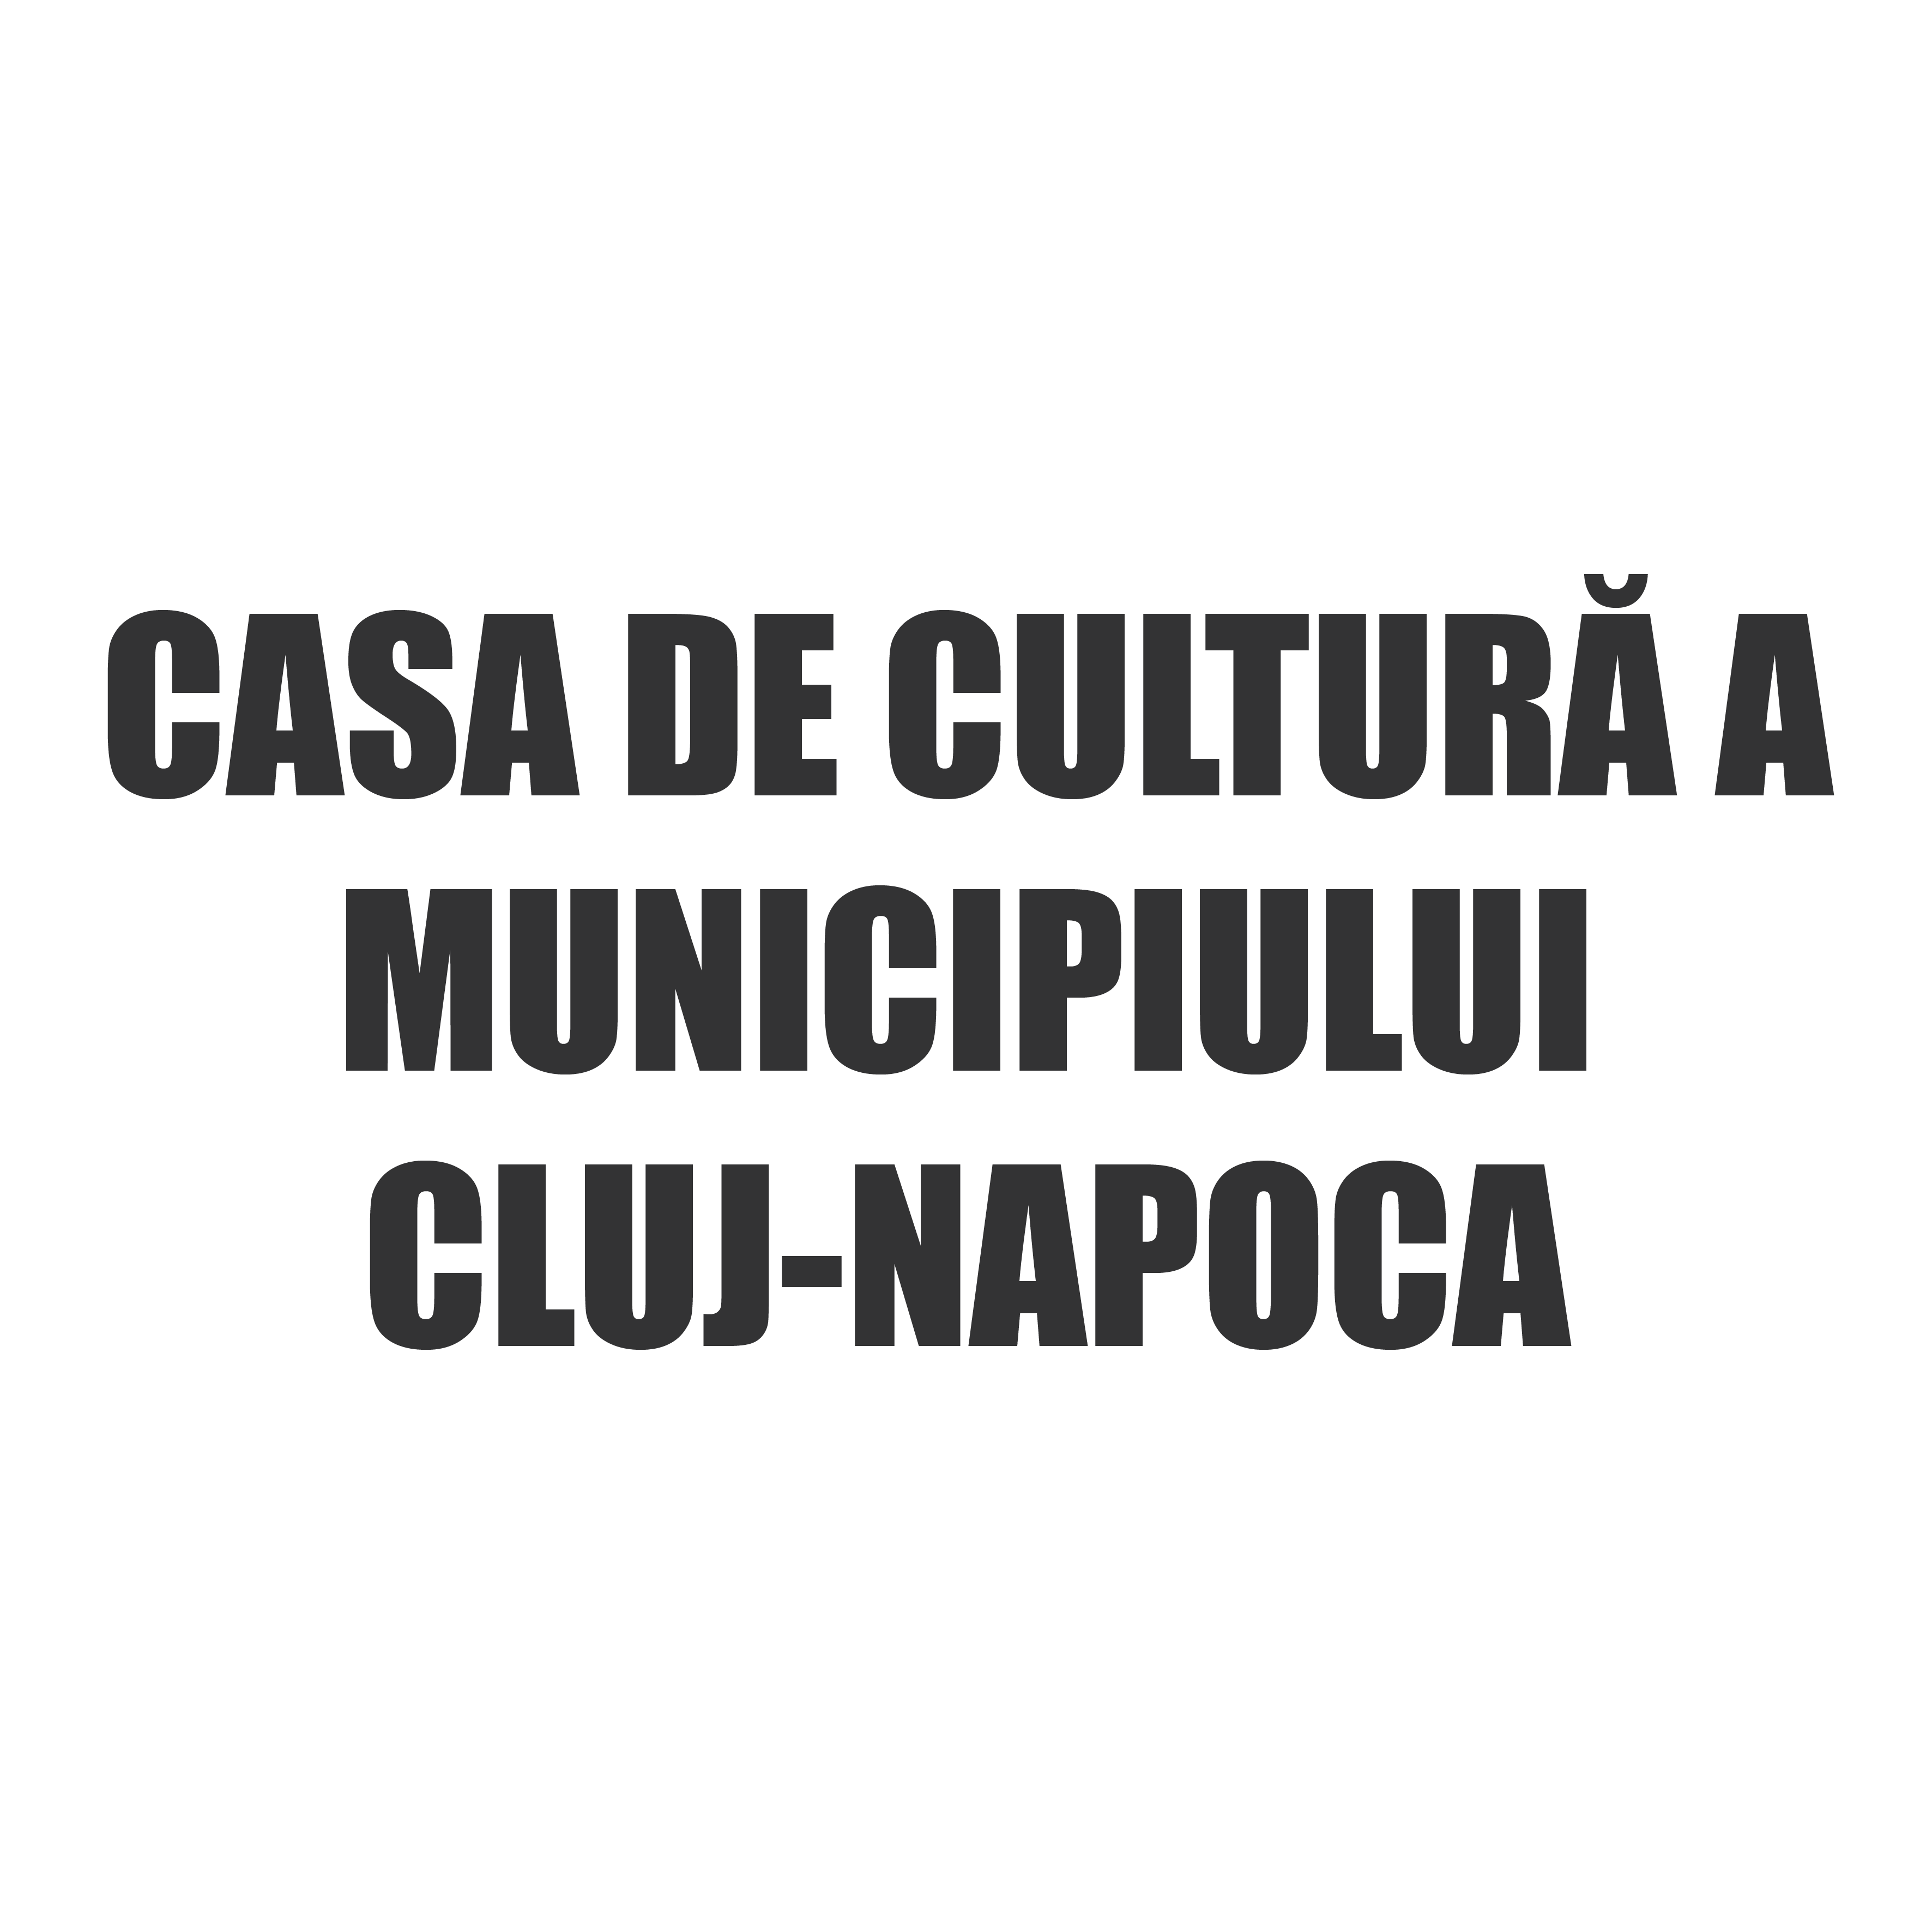 The Cultural House of the Municipality of Cluj-Napoca